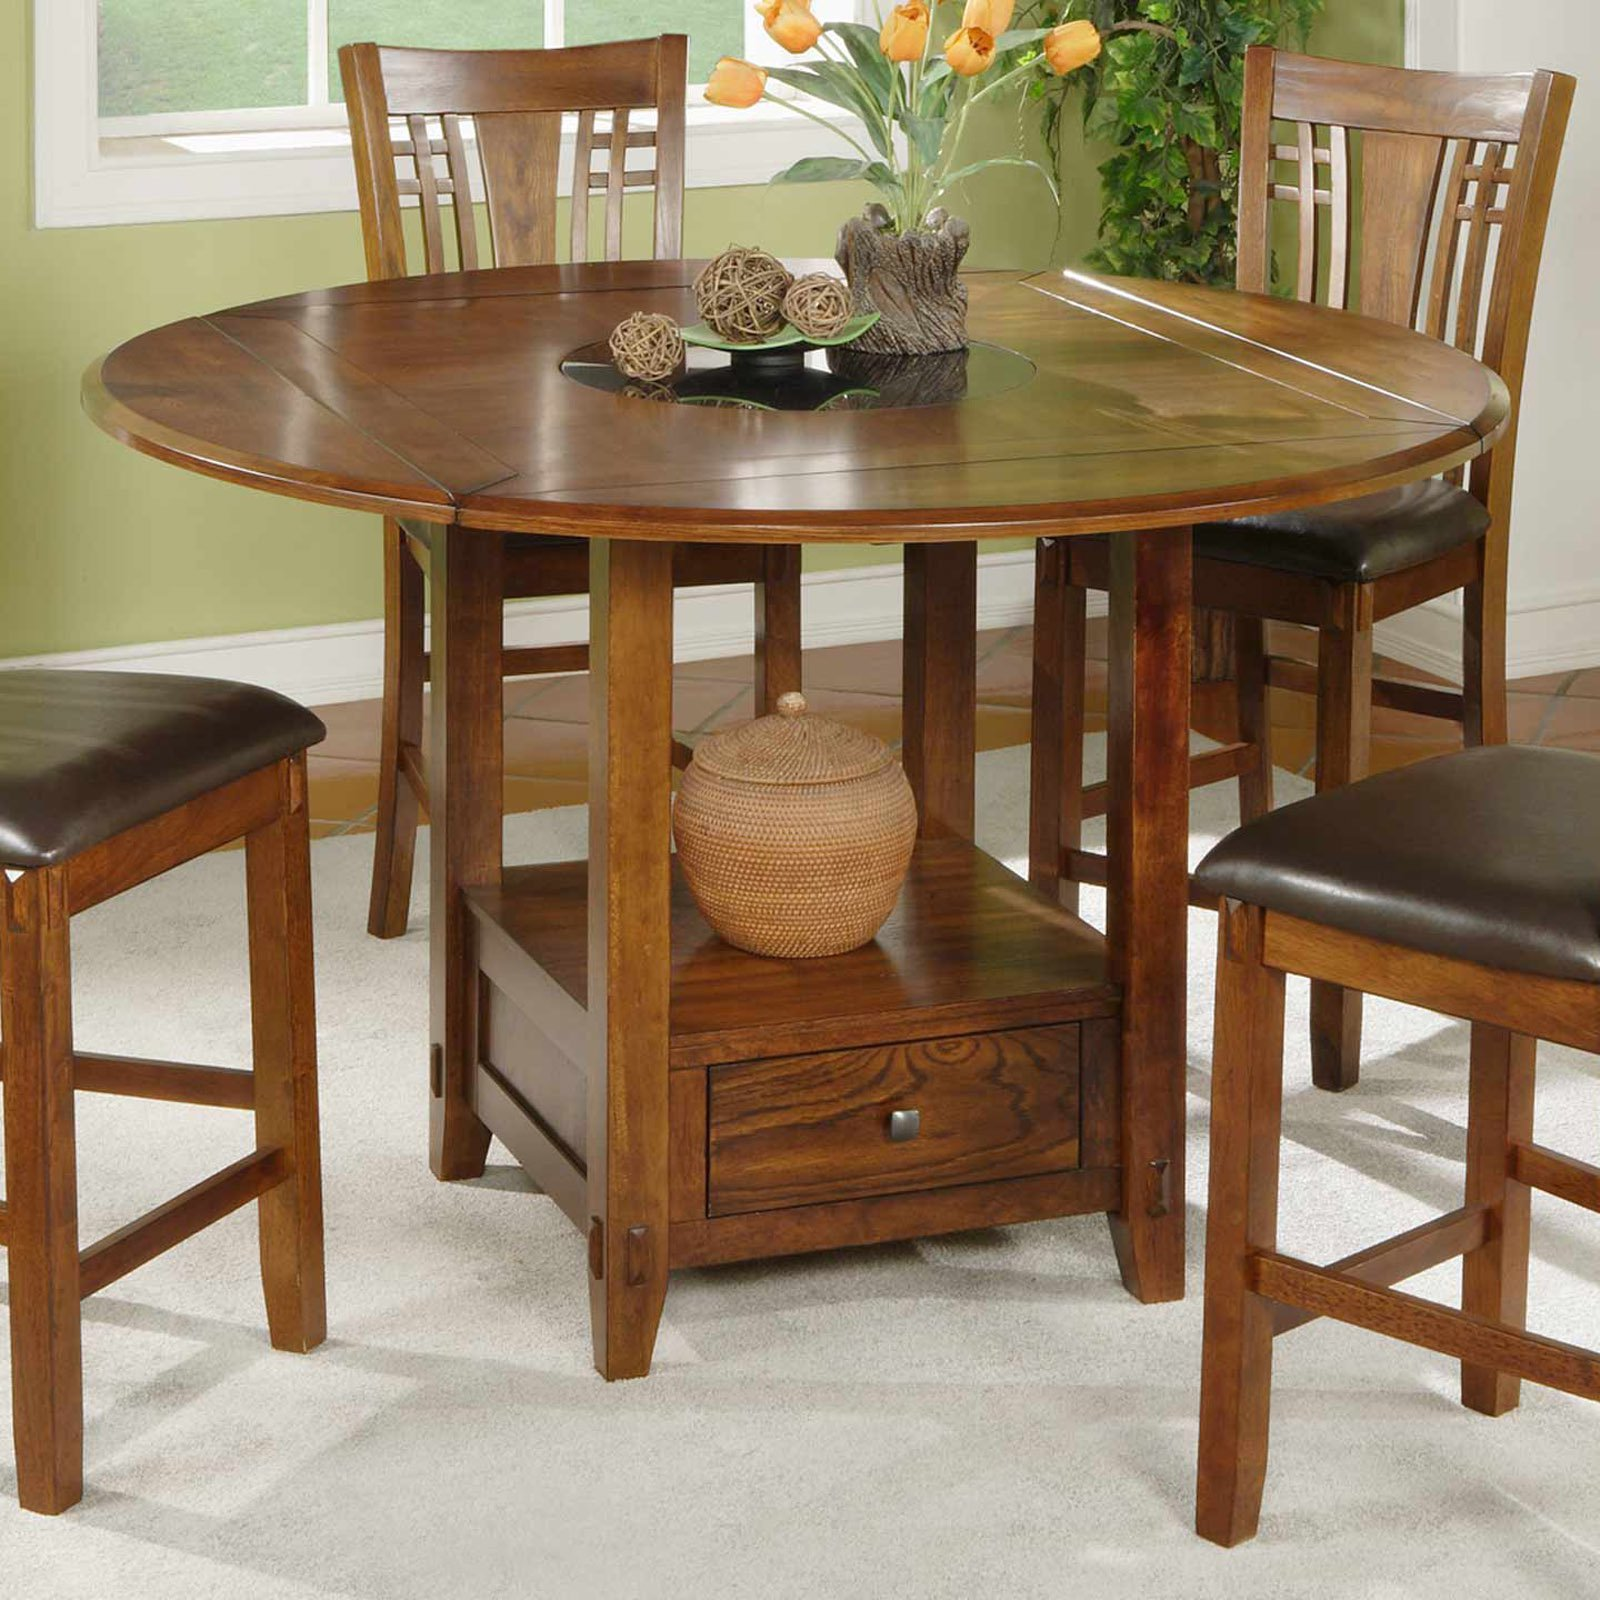 Incroyable Winners Only Zahara Round Counter Height Dining Table With Granite Lazy  Susan   Walmart.com